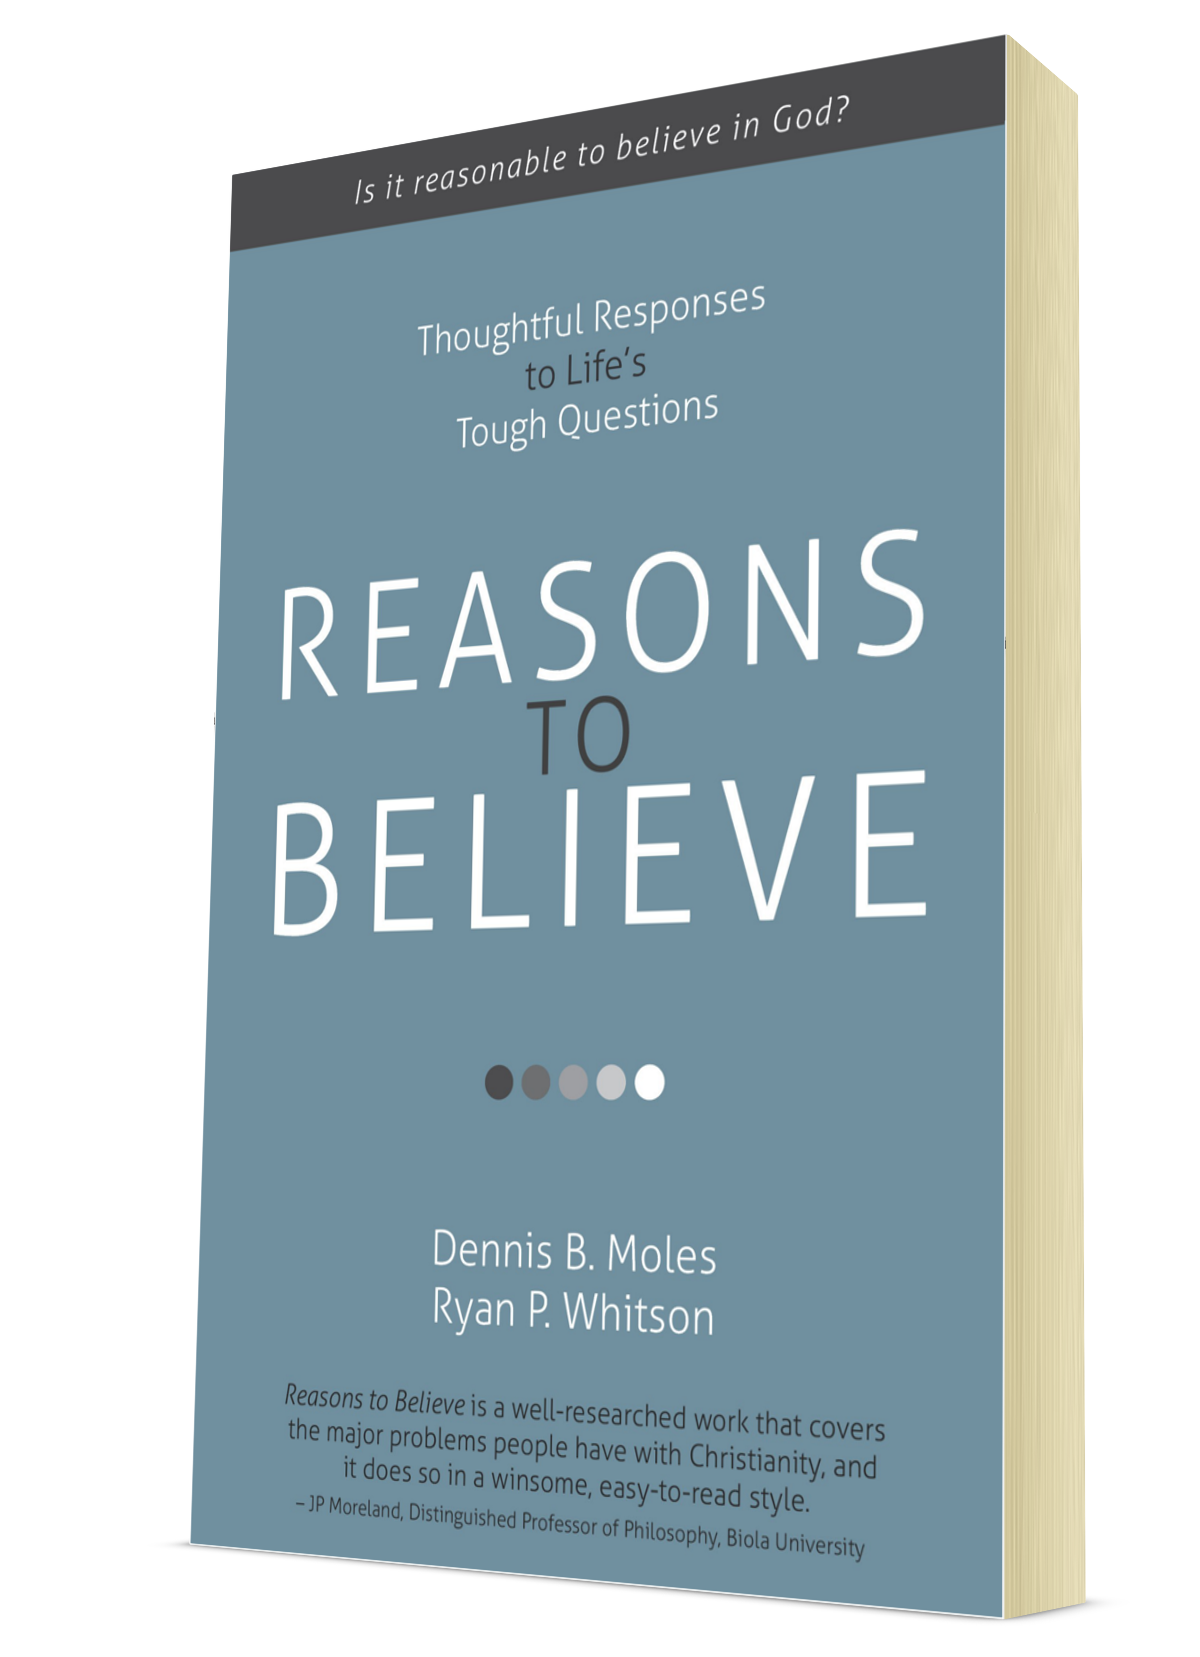 is it reasonable to believe in However, it is also reasonable not to believe in god because there is no it is reasonable to believe that there is a god who created the universe because there is no way to prove there is no god and because there.